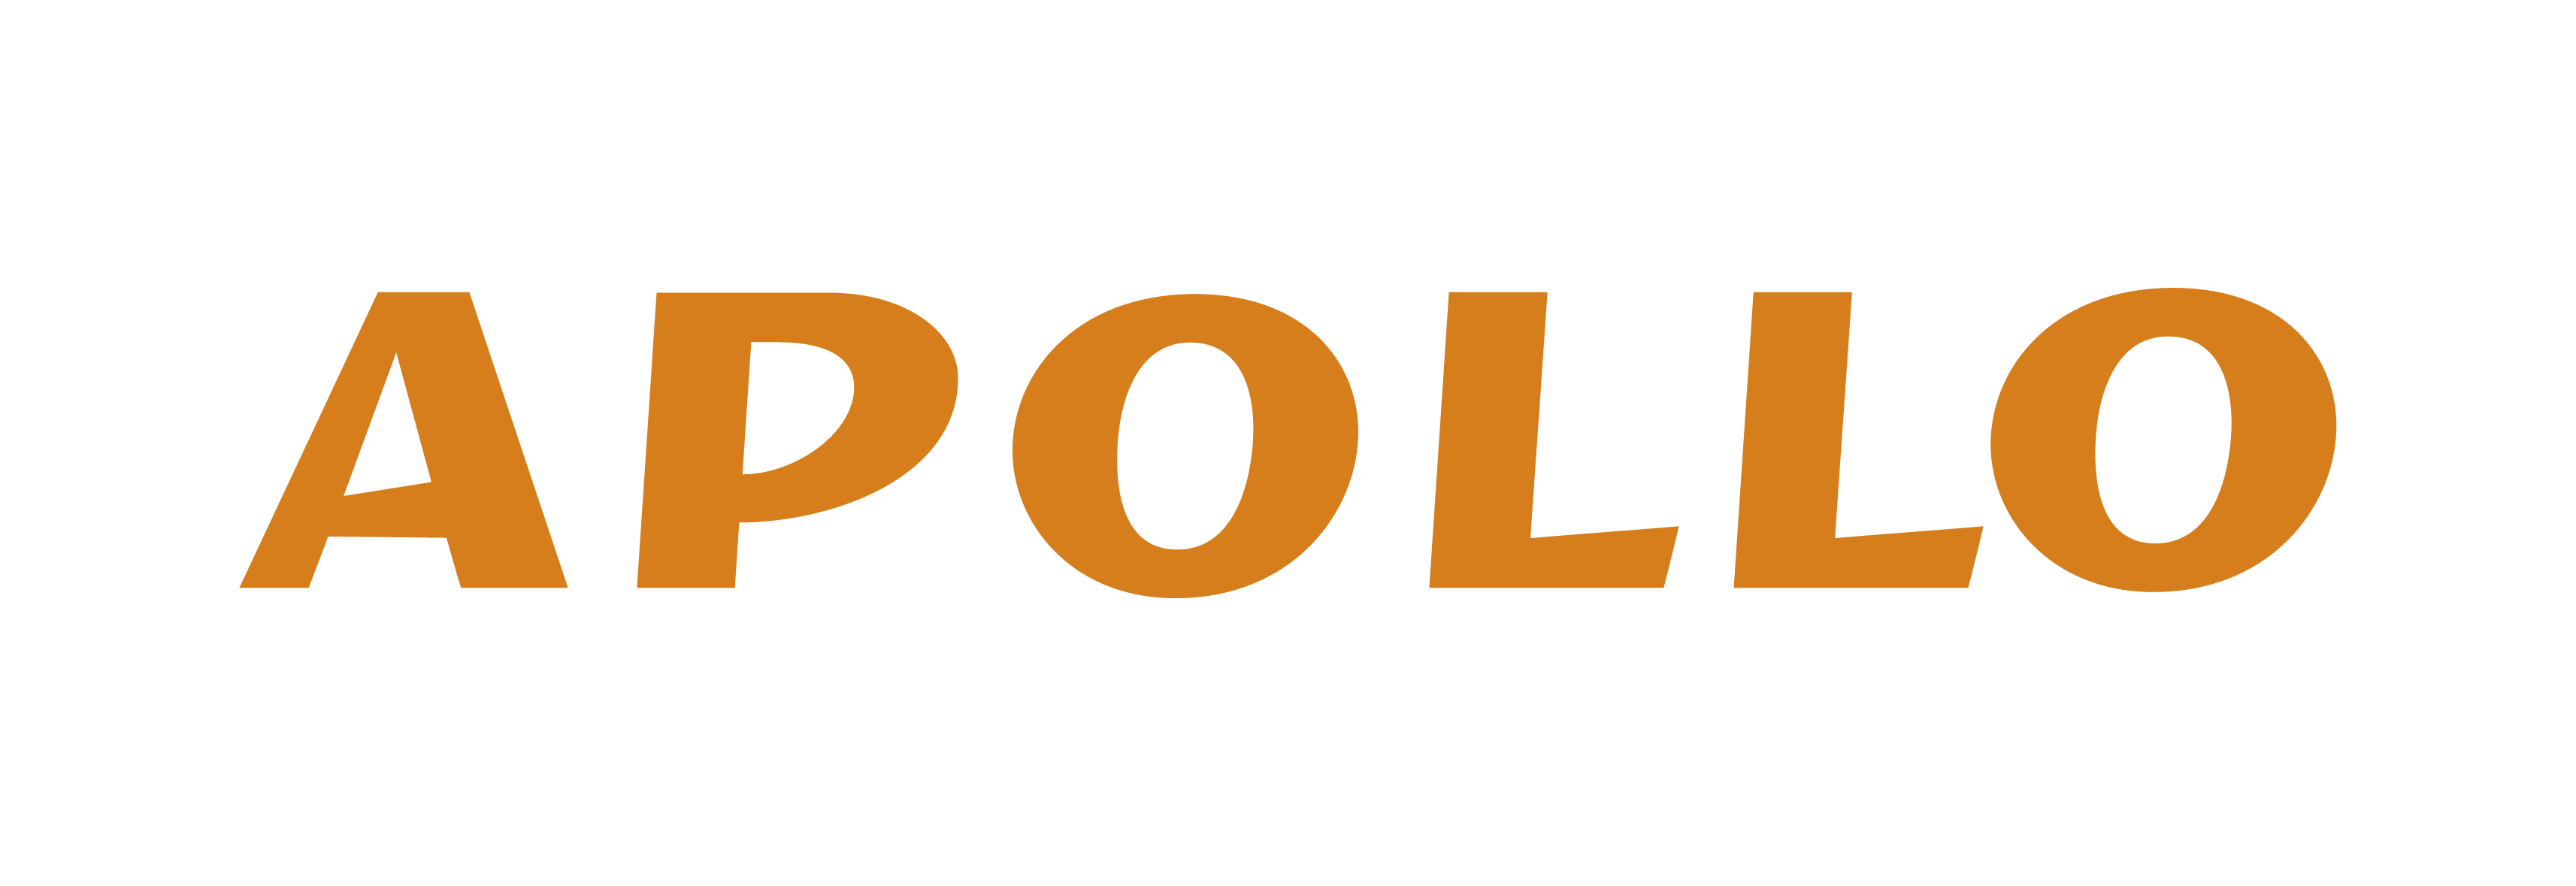 Apollo_logo_Orange_Group